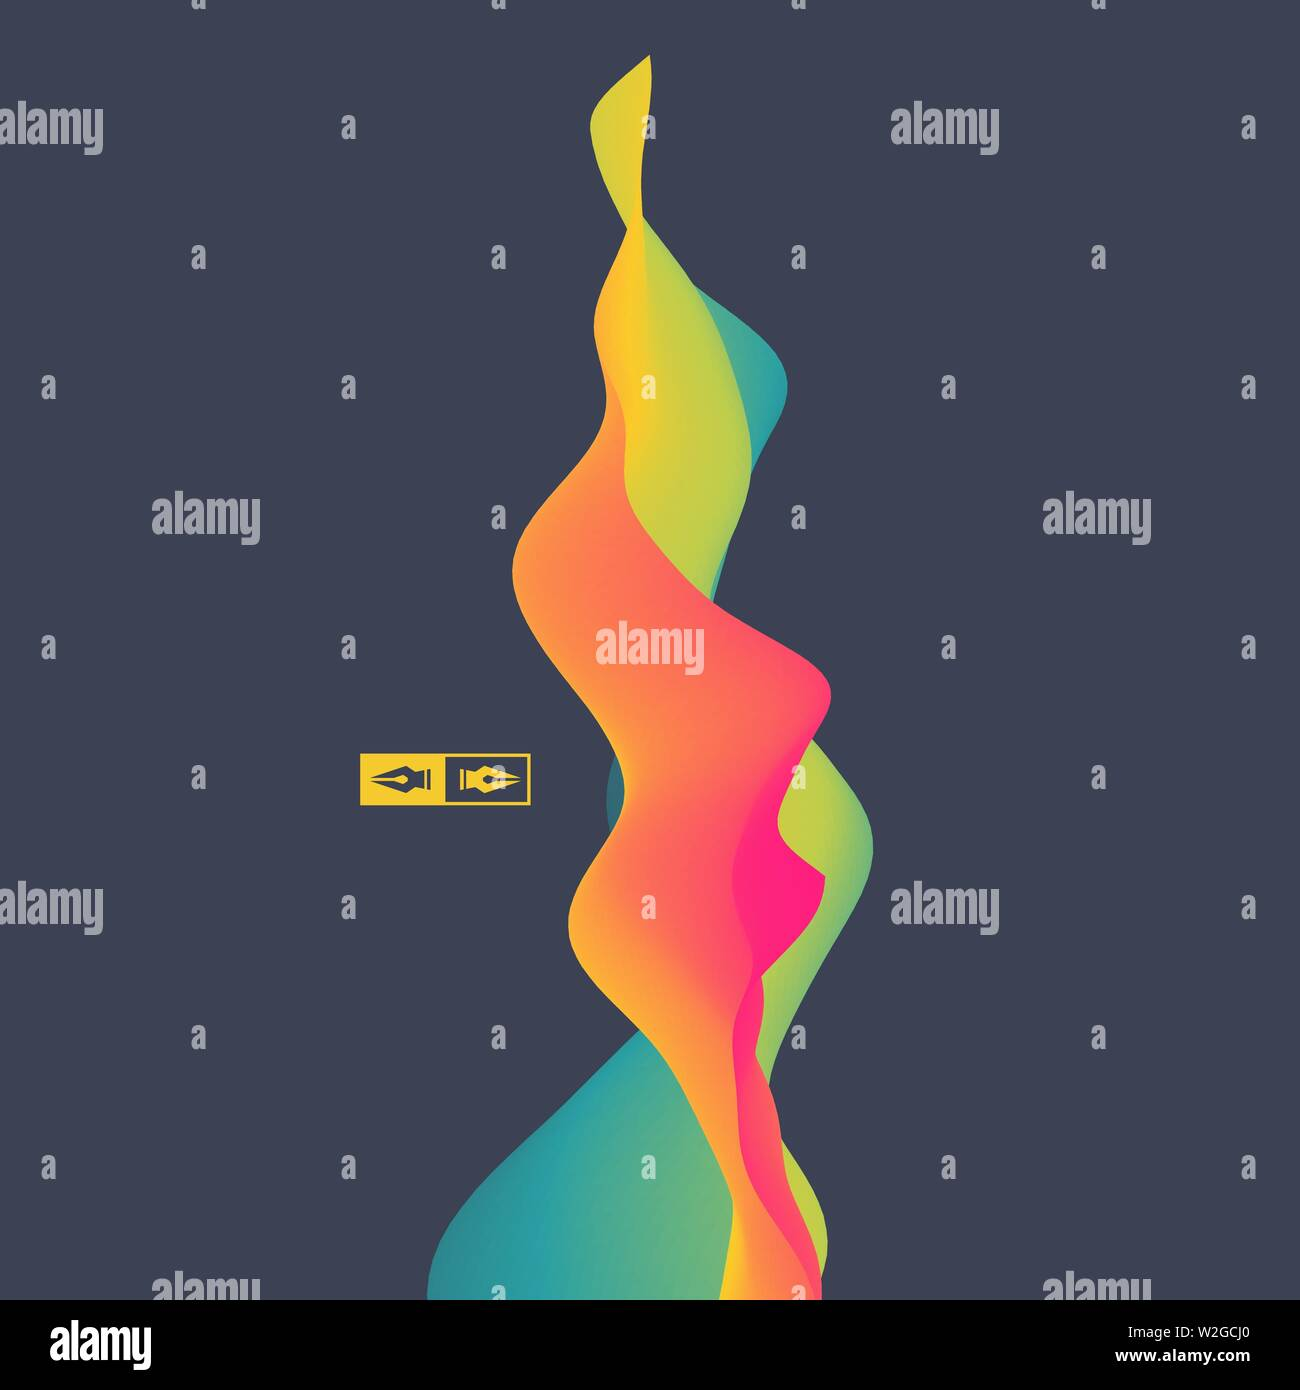 3D Wavy Background  Dynamic Effect  Abstract Vector Illustration